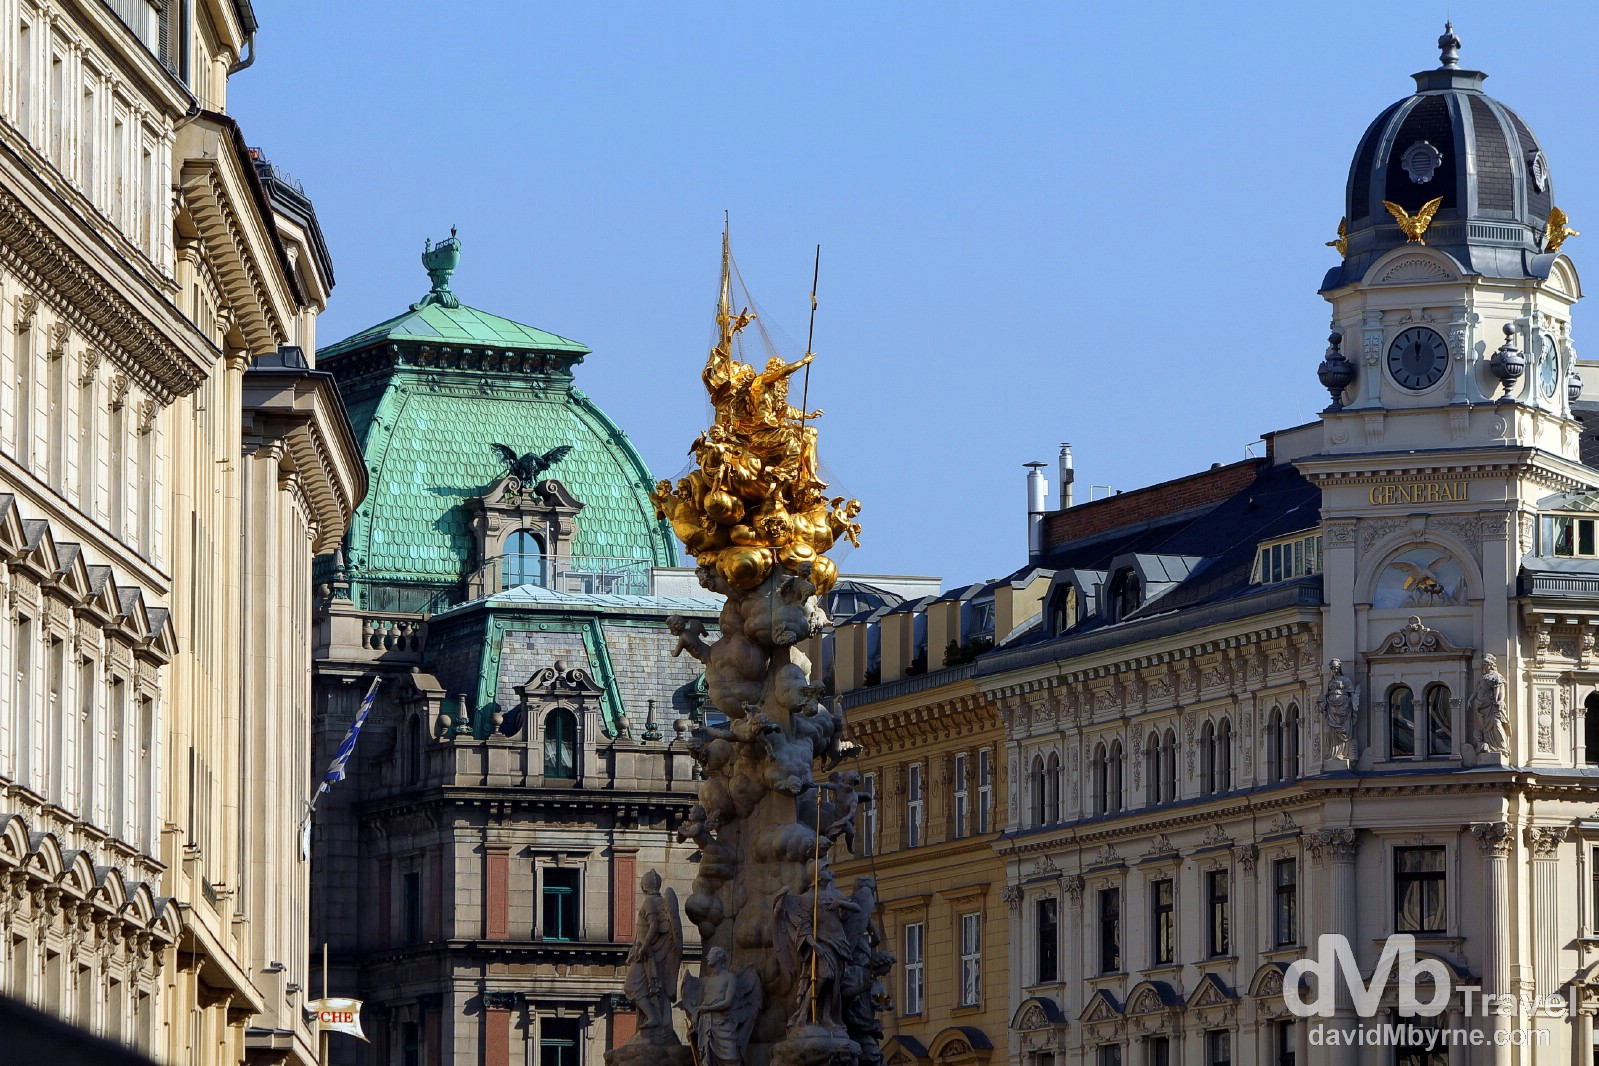 Buildings on Graben, a plush shopping street & the main pedestrian thoroughfare in Vienna, Austria. March 29th, 2014.